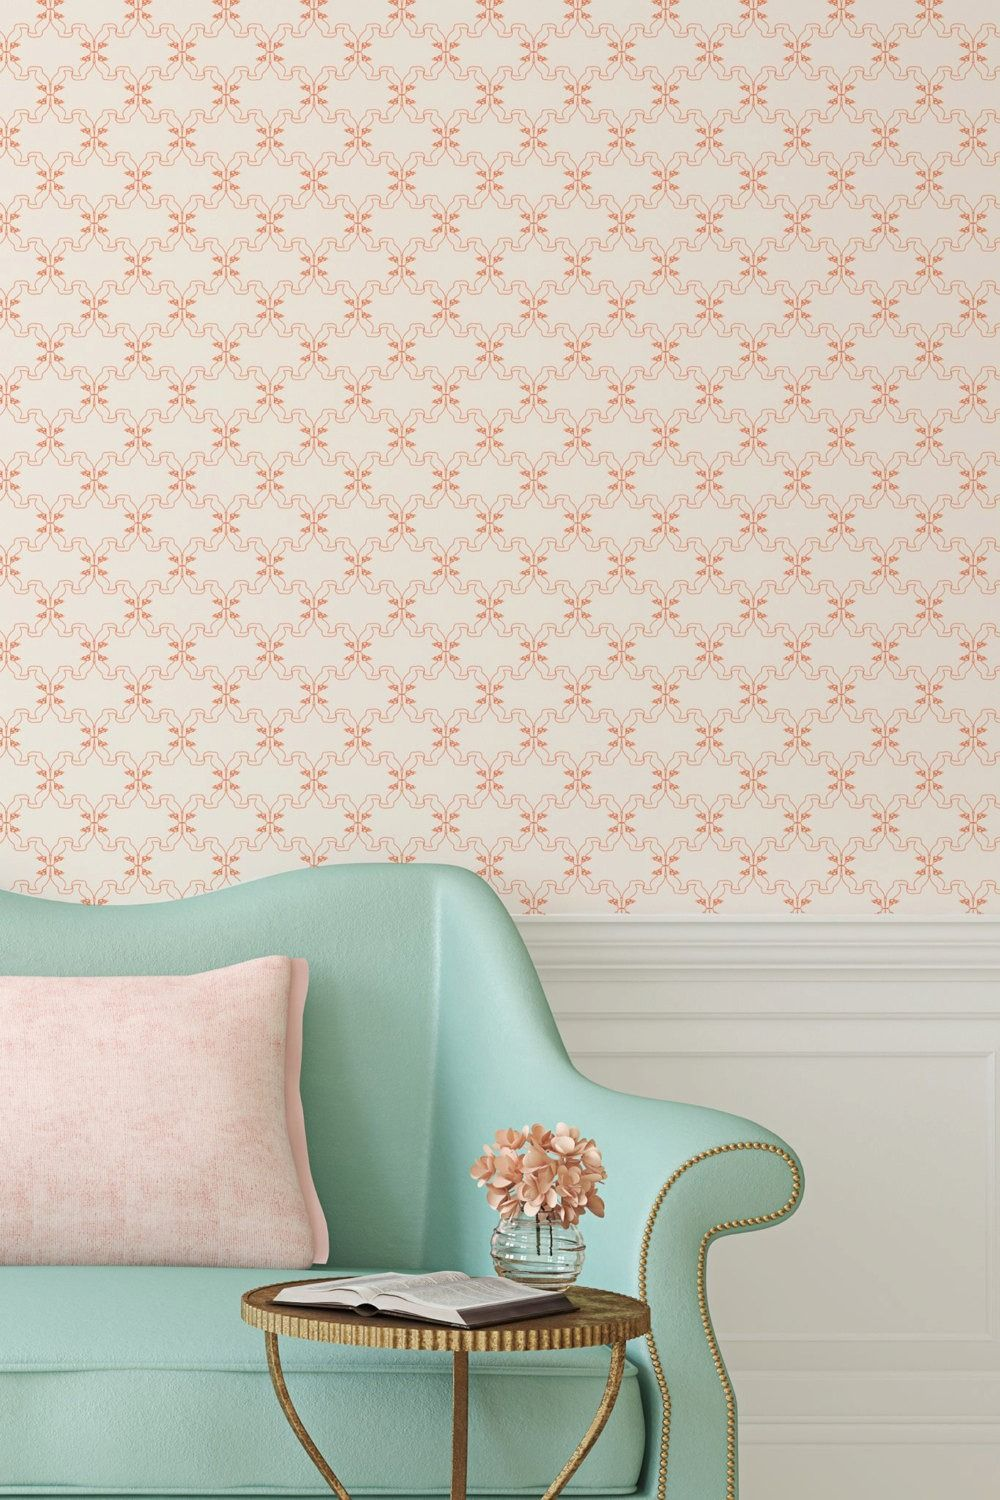 Peel And Stick Your Way To An Updated Room Vintage Living Room Furniture Home Decor Wallpaper Samples